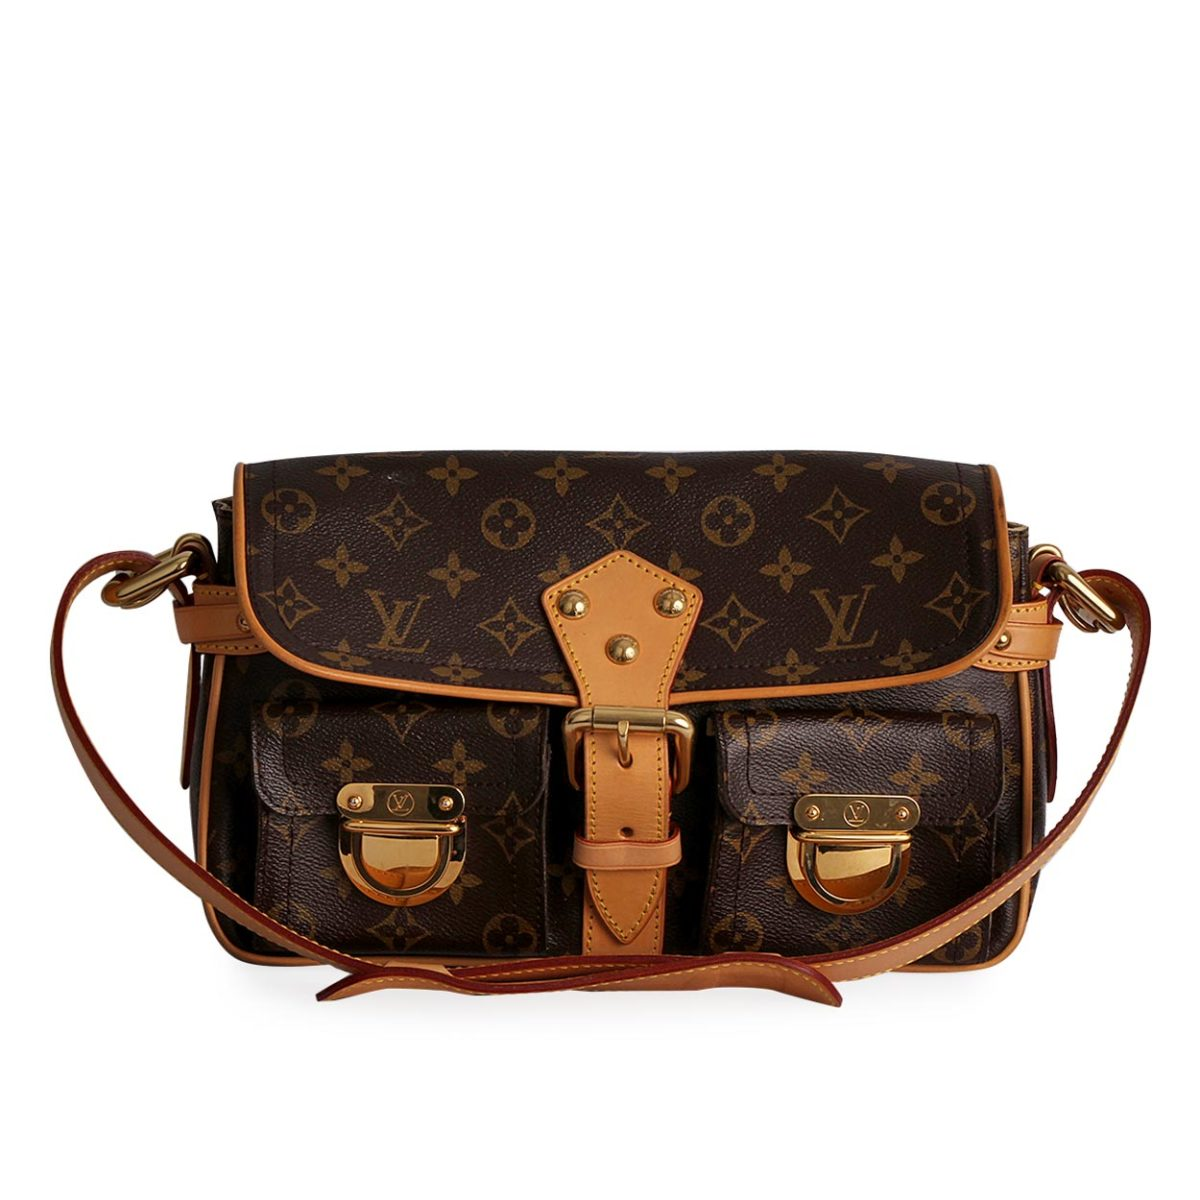 5c645cf3240 LOUIS VUITTON Monogram Hudson PM Bag | Luxity